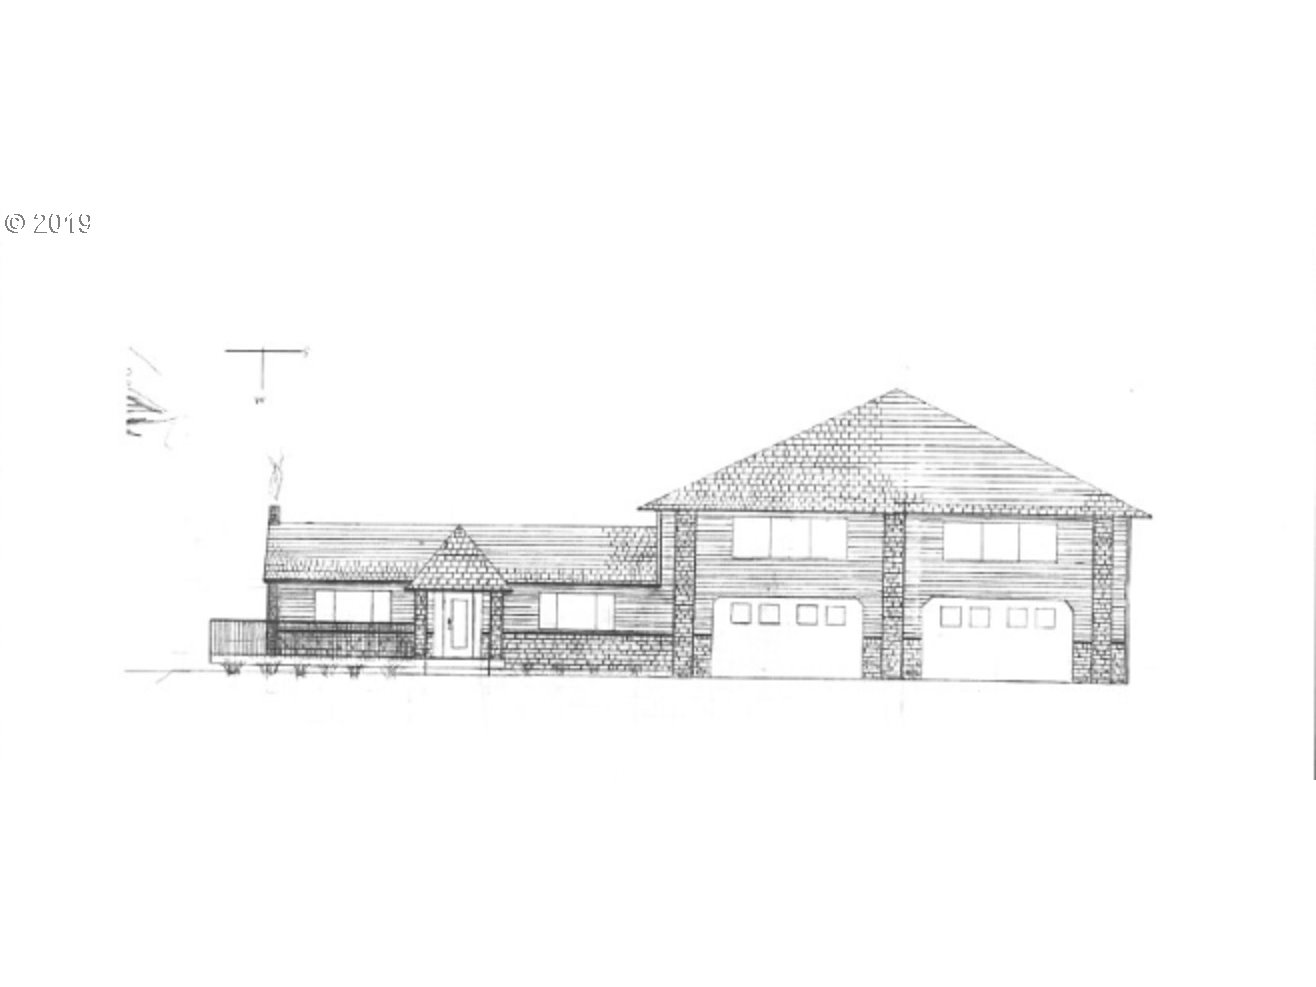 Existing home will be renovated with a new 2 story addition. Great room concept floor plan with very large rooms. Master suite with private deck that has Mt Hood views. 4 car attached garage. Property is very private with established garden. Also has 20x24 shop with 220 power and water. Call today with any questions.